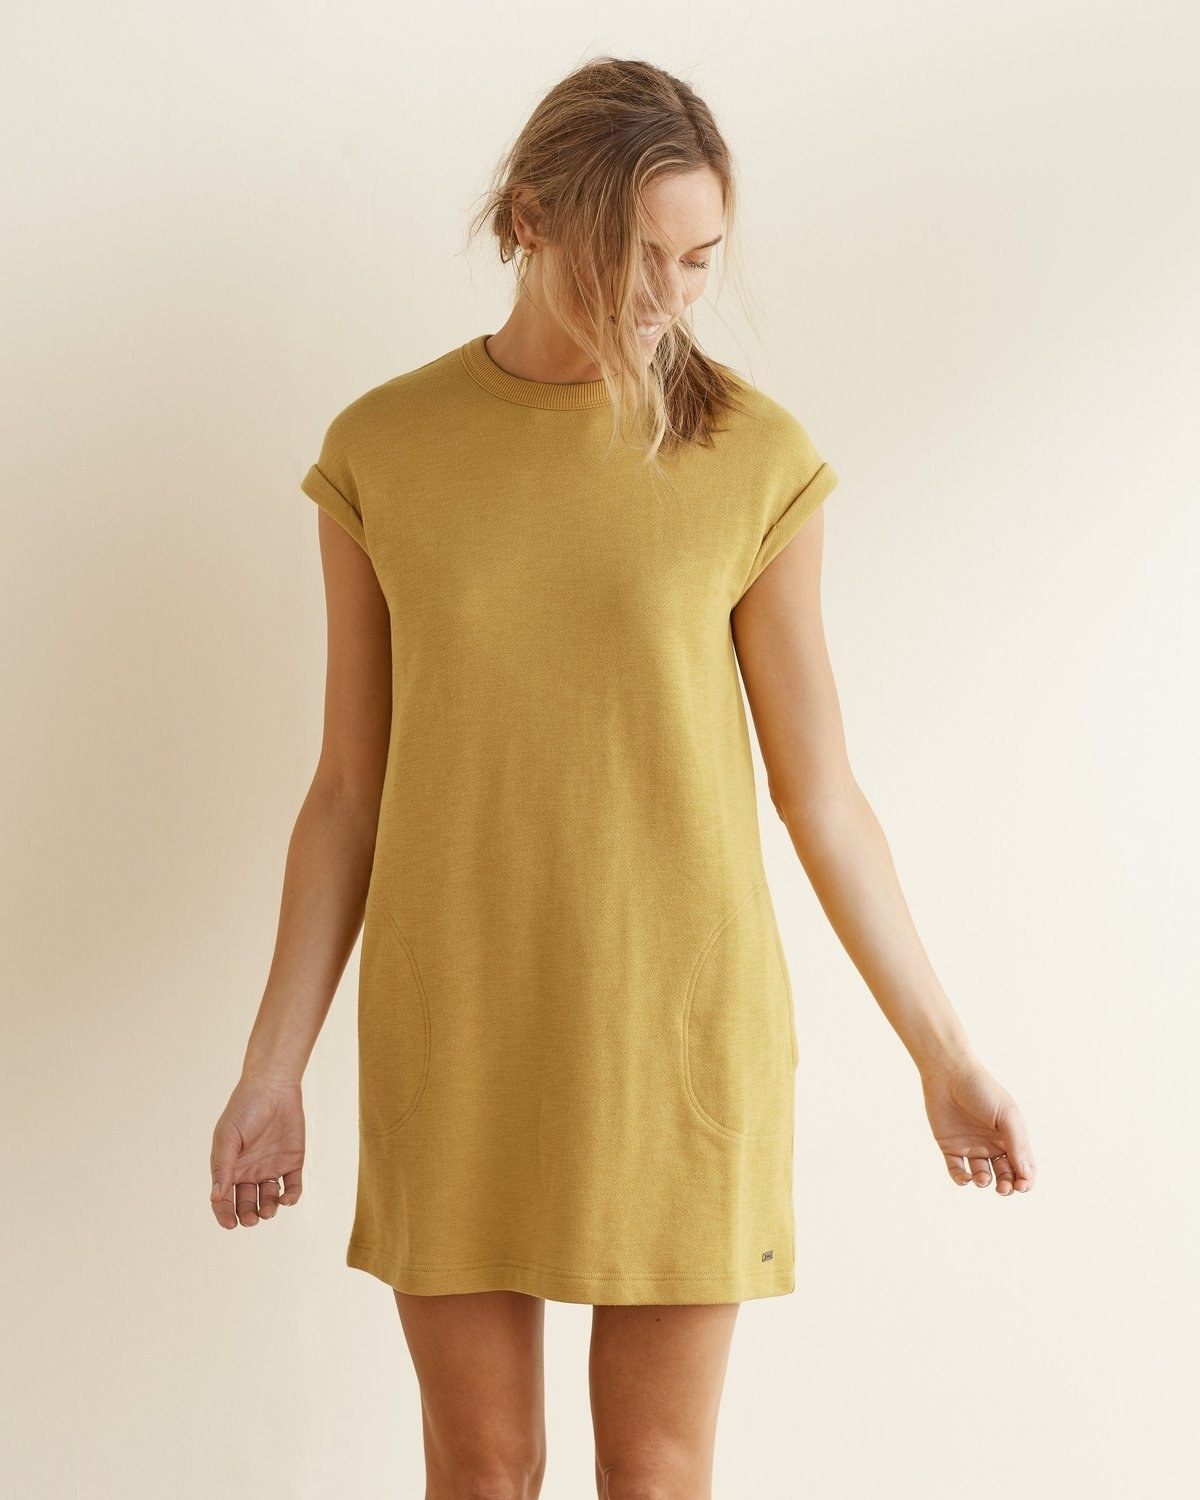 model wears yellow shift dress with short sleeves